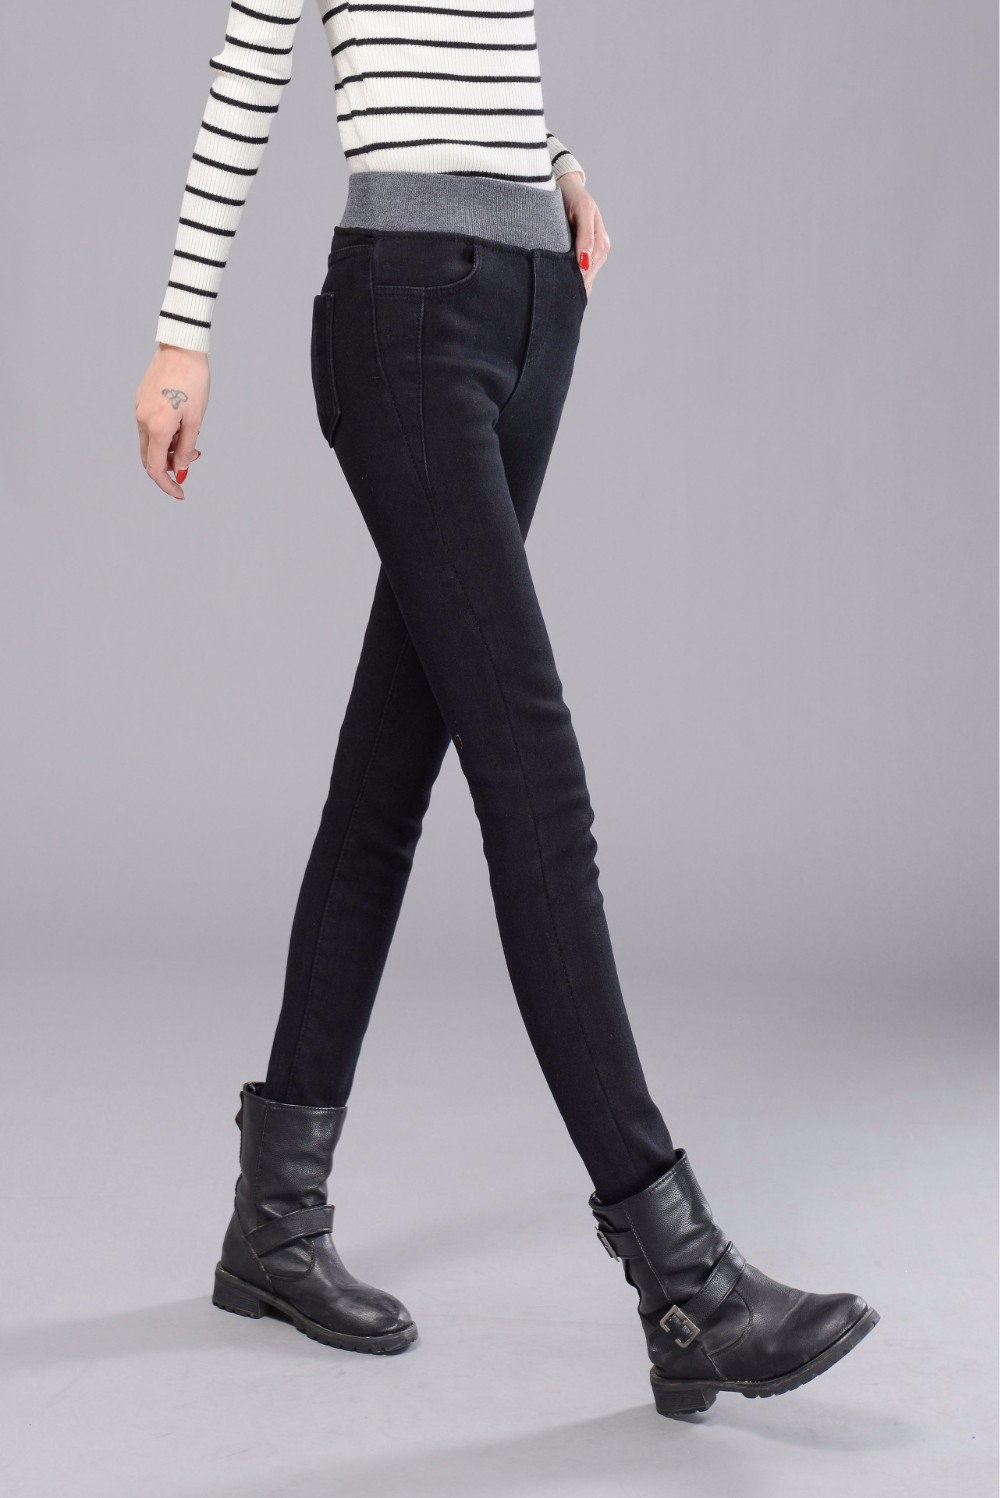 Plus Velvet Jeans Women Casual Pants High Waist Jeans Elastic Waist Pencil Pants Fashion Denim Trousers Winter Warm Plus Size 40 9